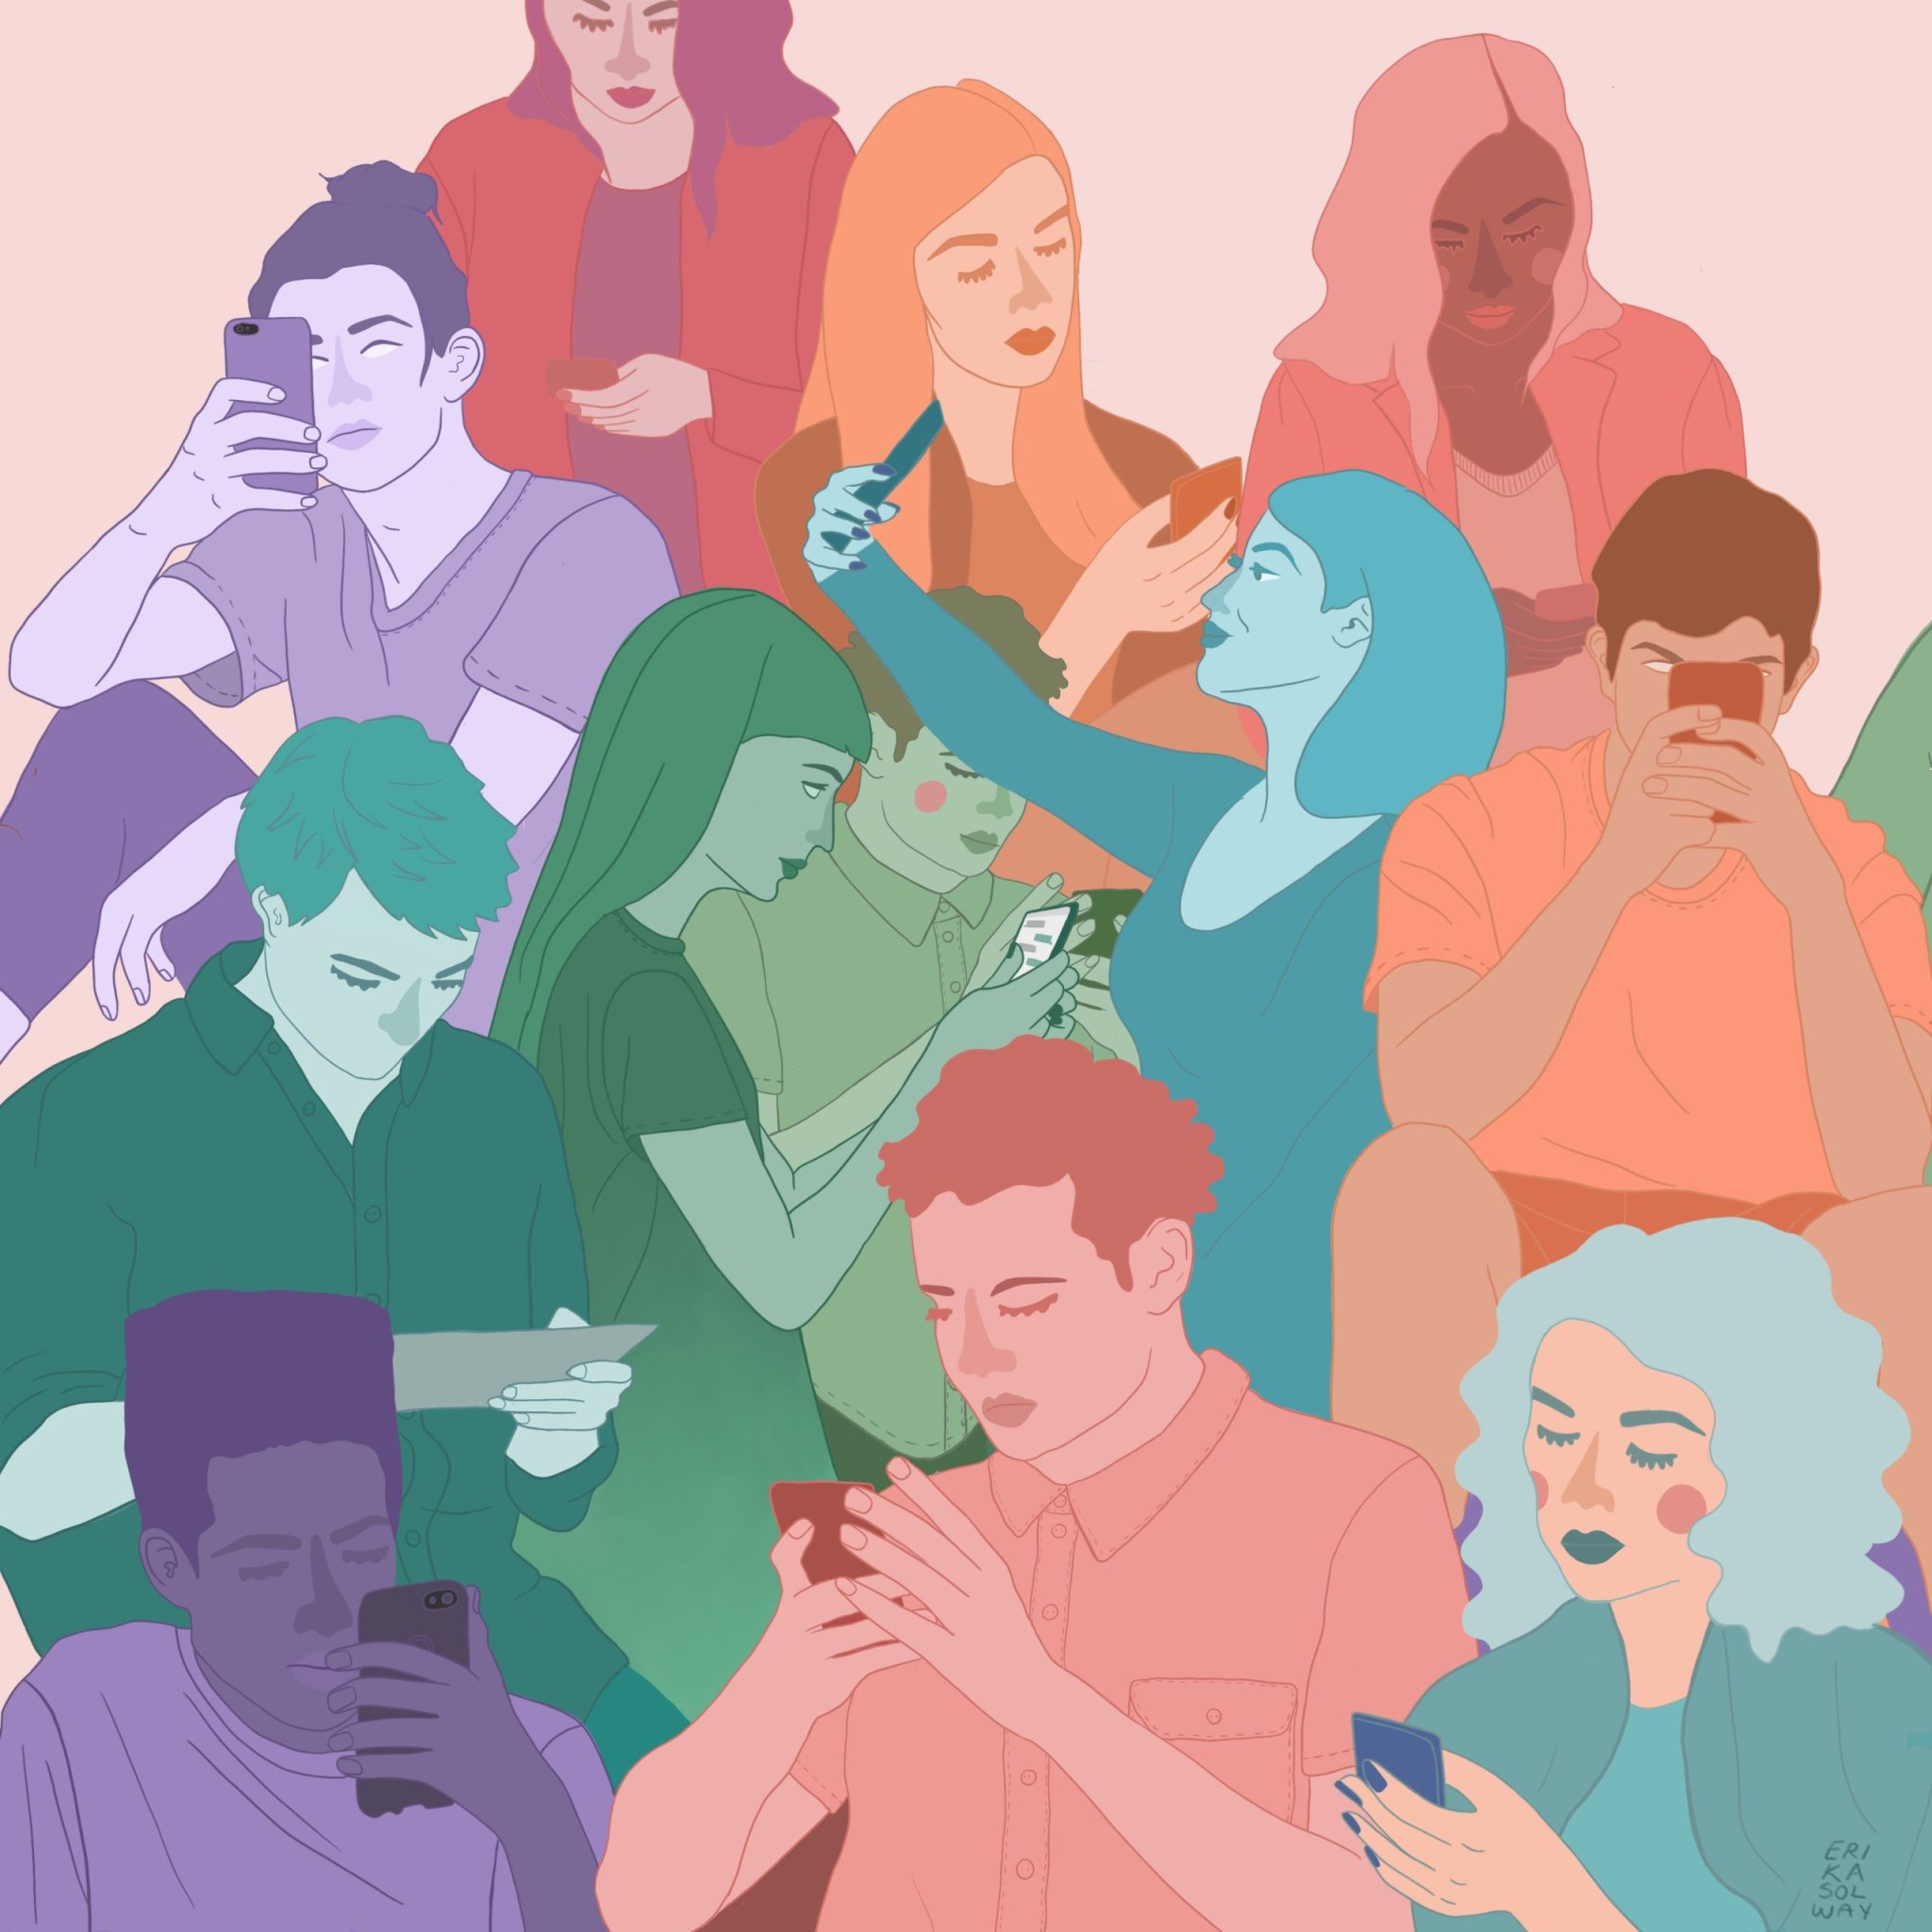 What Kind of Digital Friend Are You?